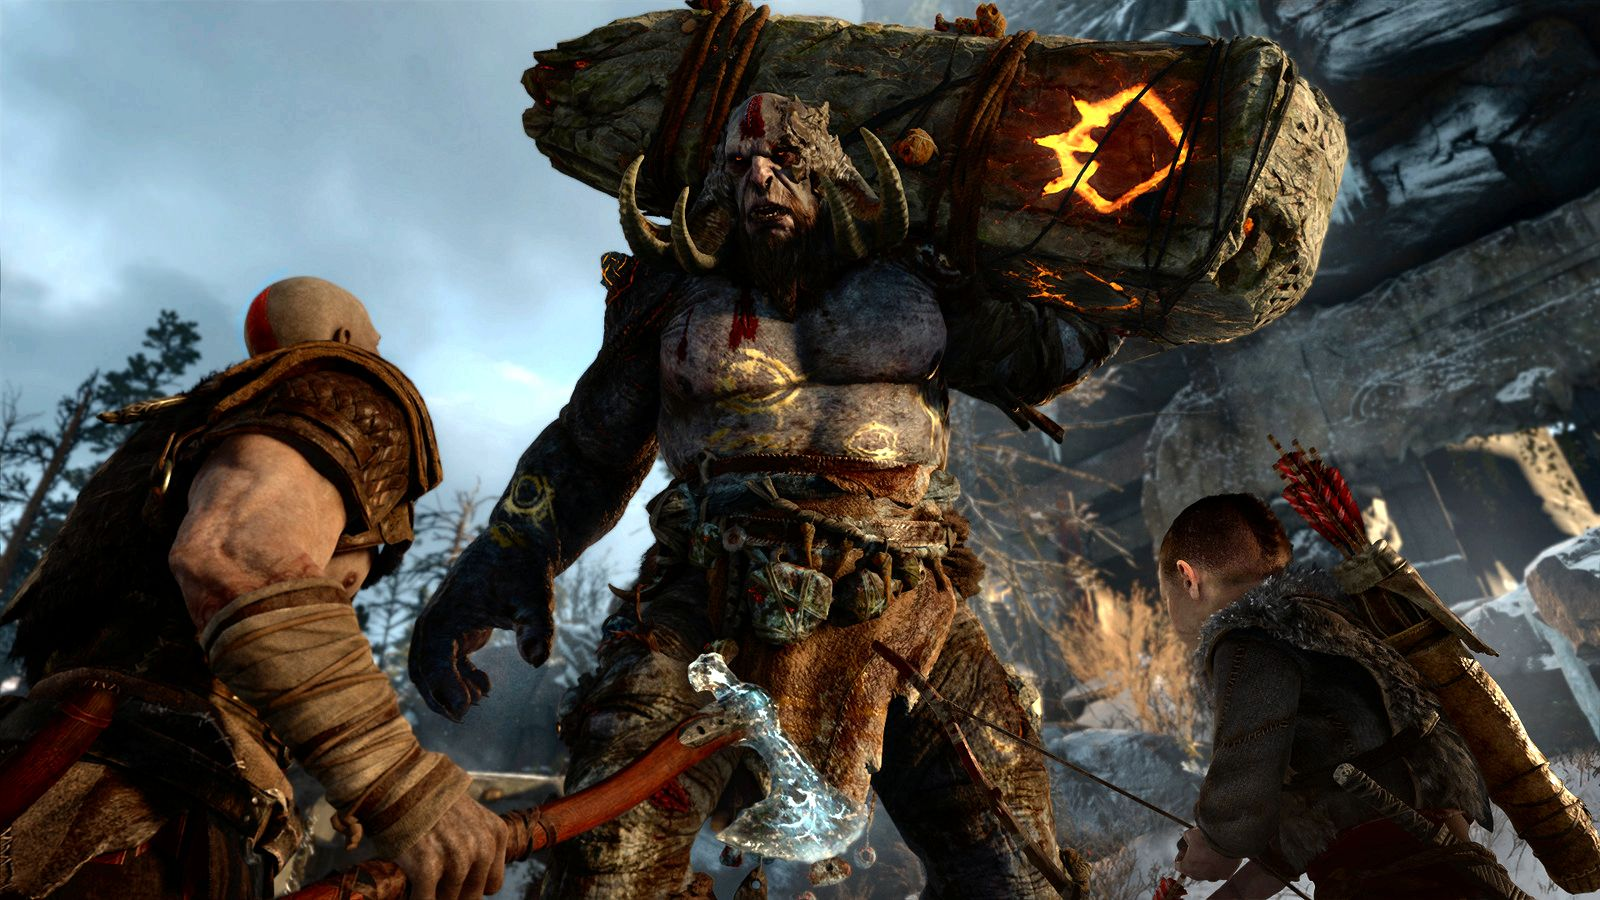 God of war 4 to understand more about norse mythology: will kratos fight thor? surprising that he must